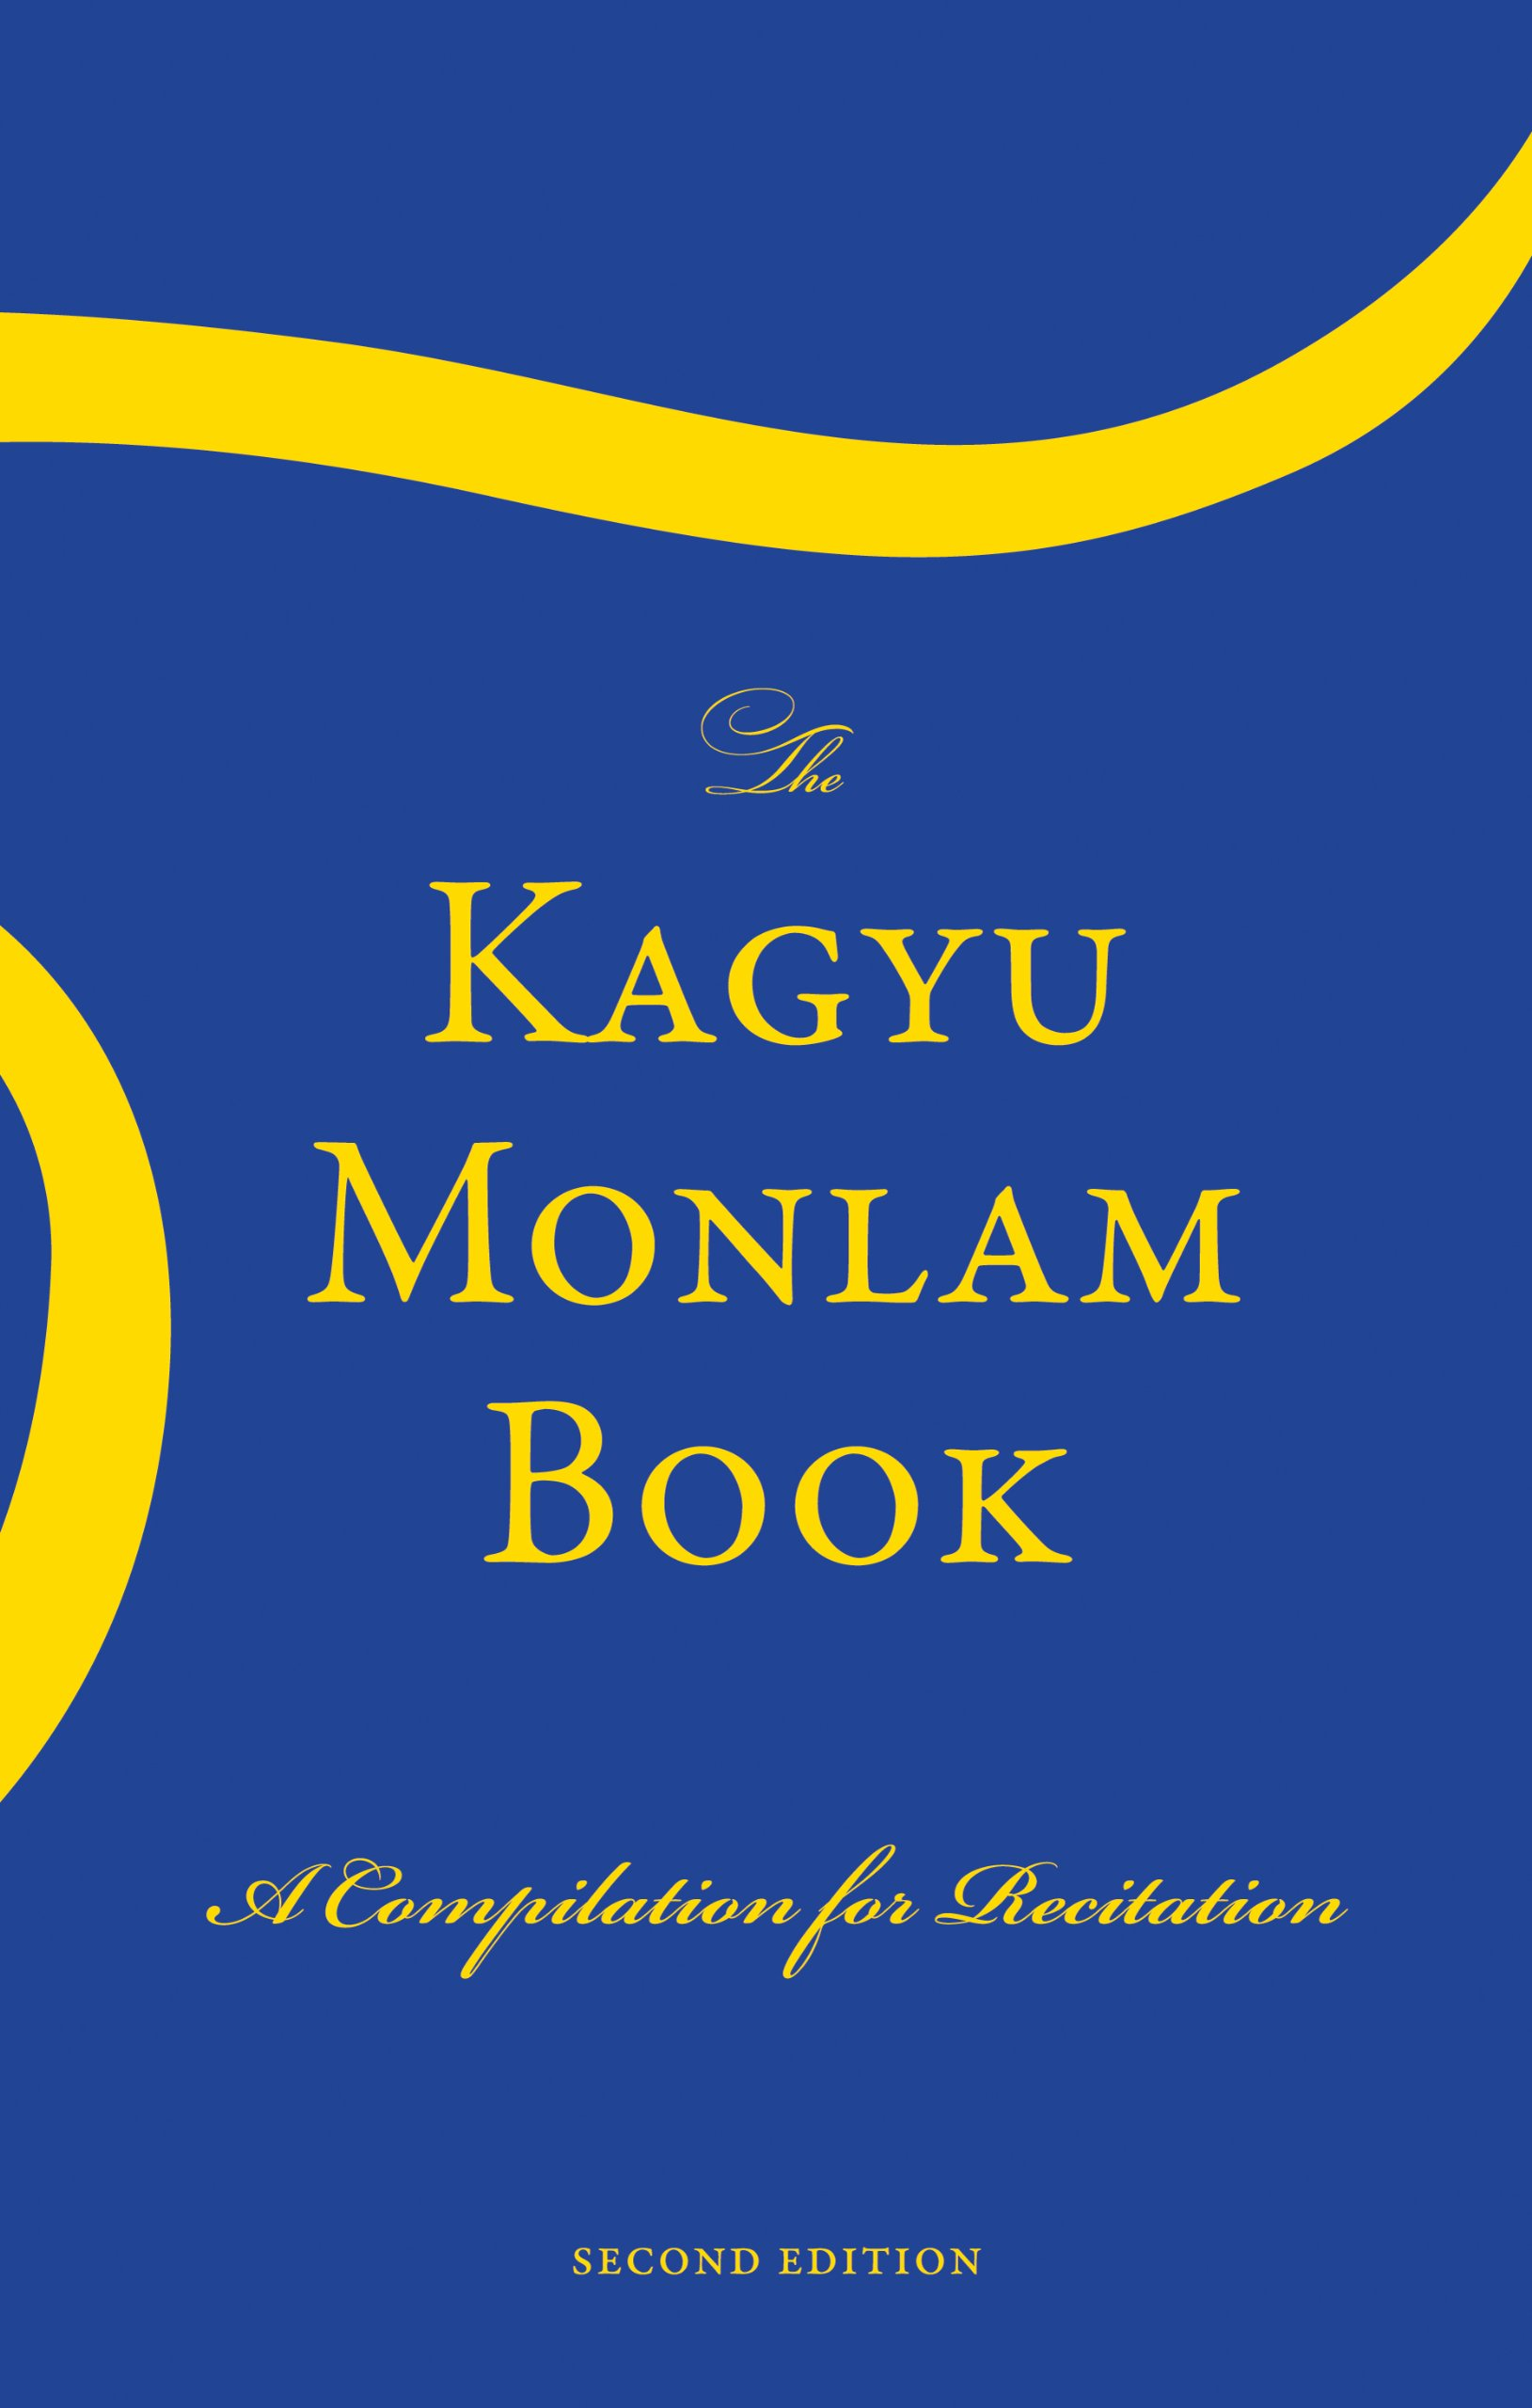 The Kagyu Monlam Book